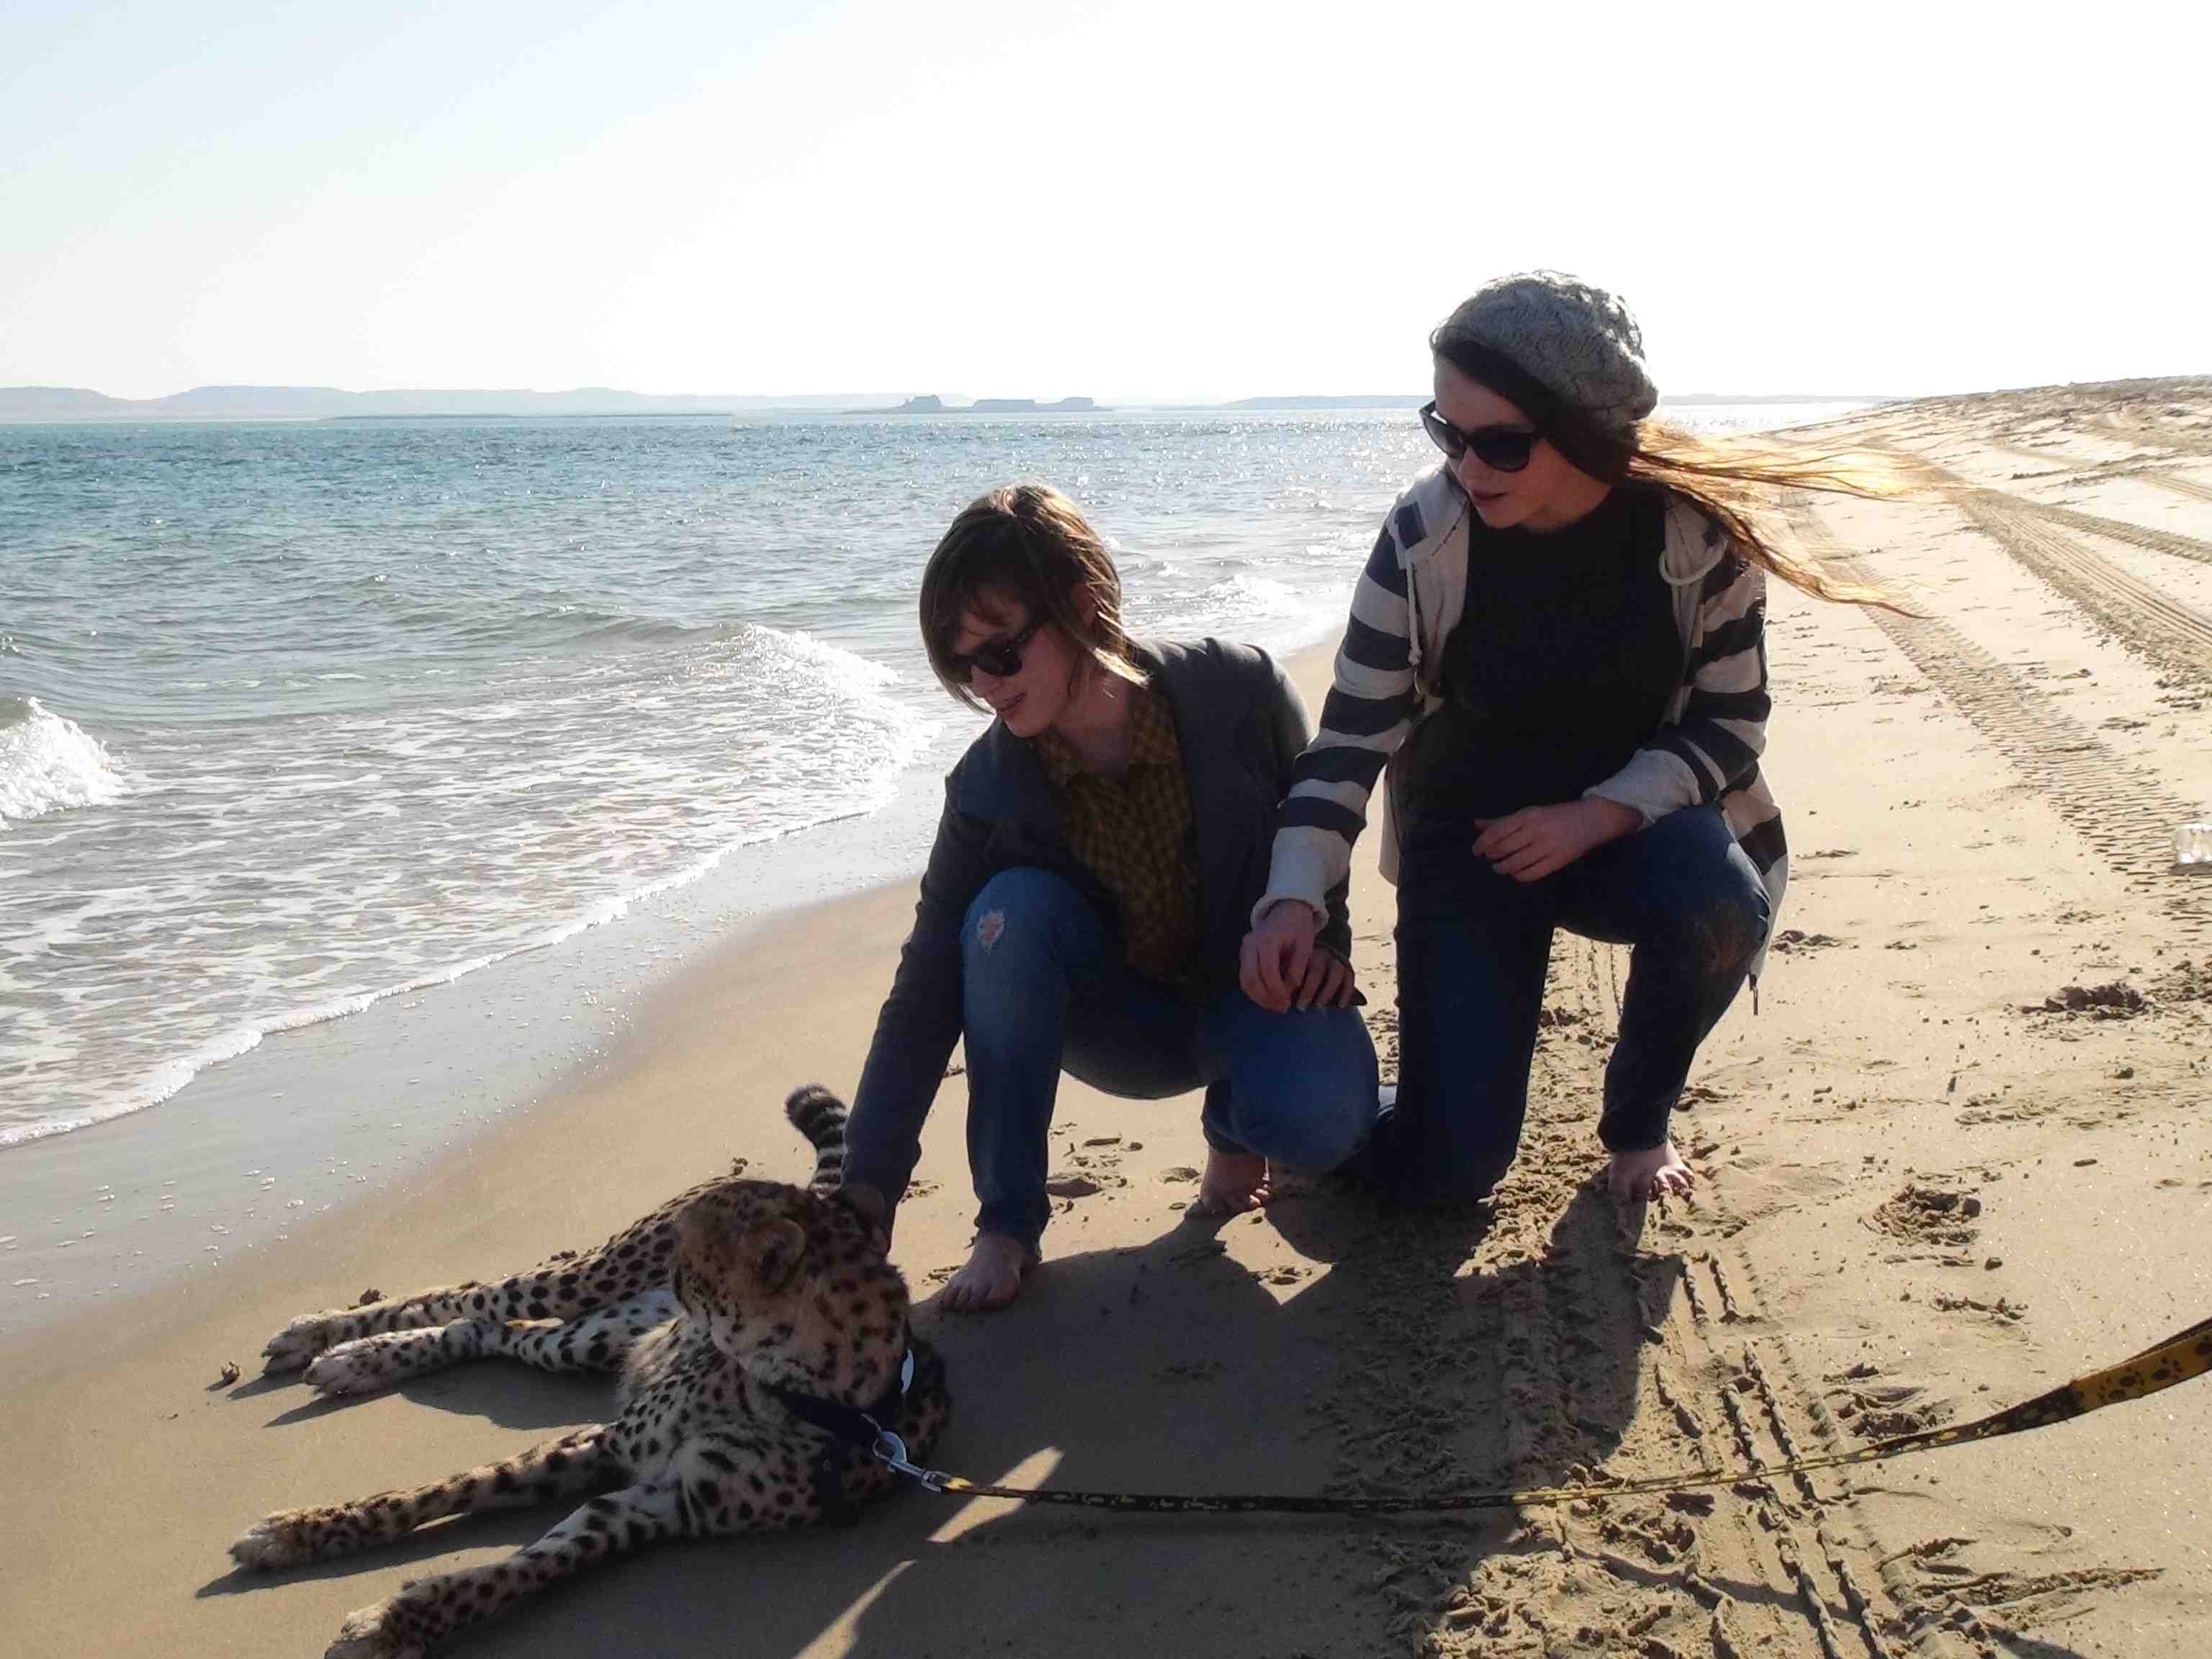 Hannah and her sister have a chance to pet a cheetah on the beach in Qatar.